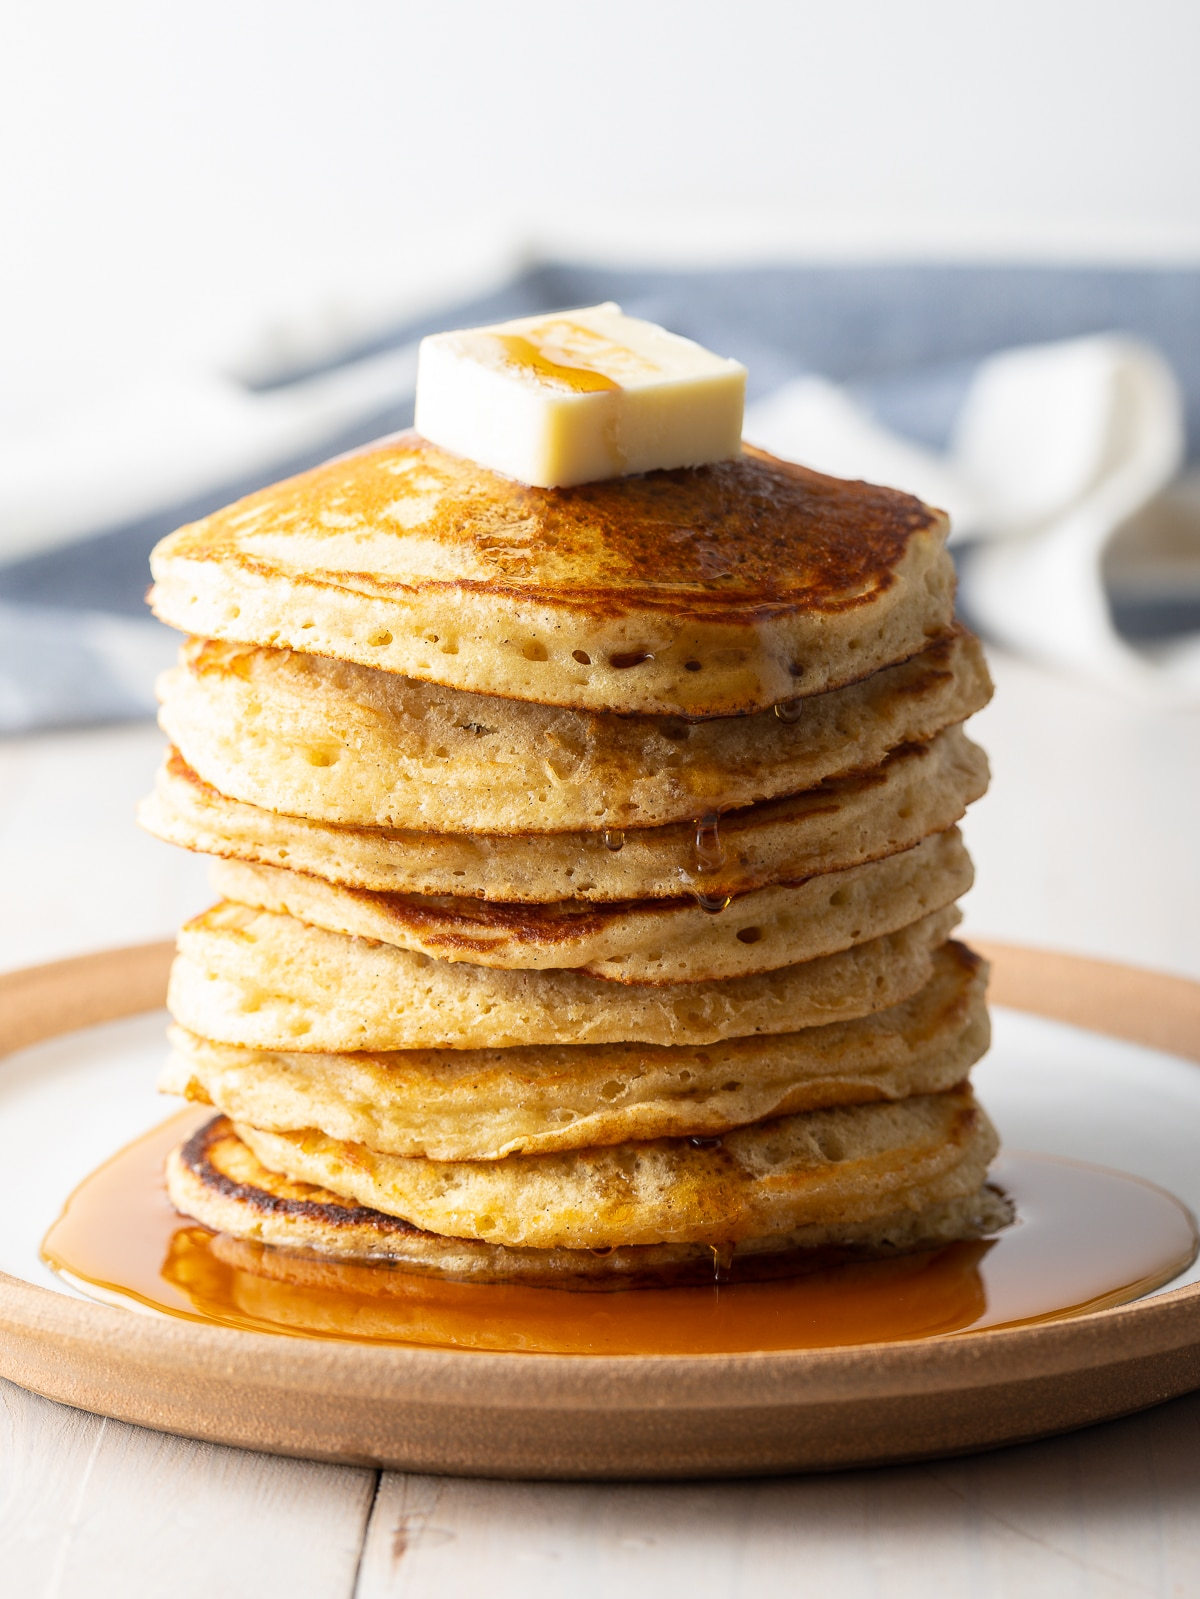 The Best Homemade Pancakes made from scratch with secret ingredients